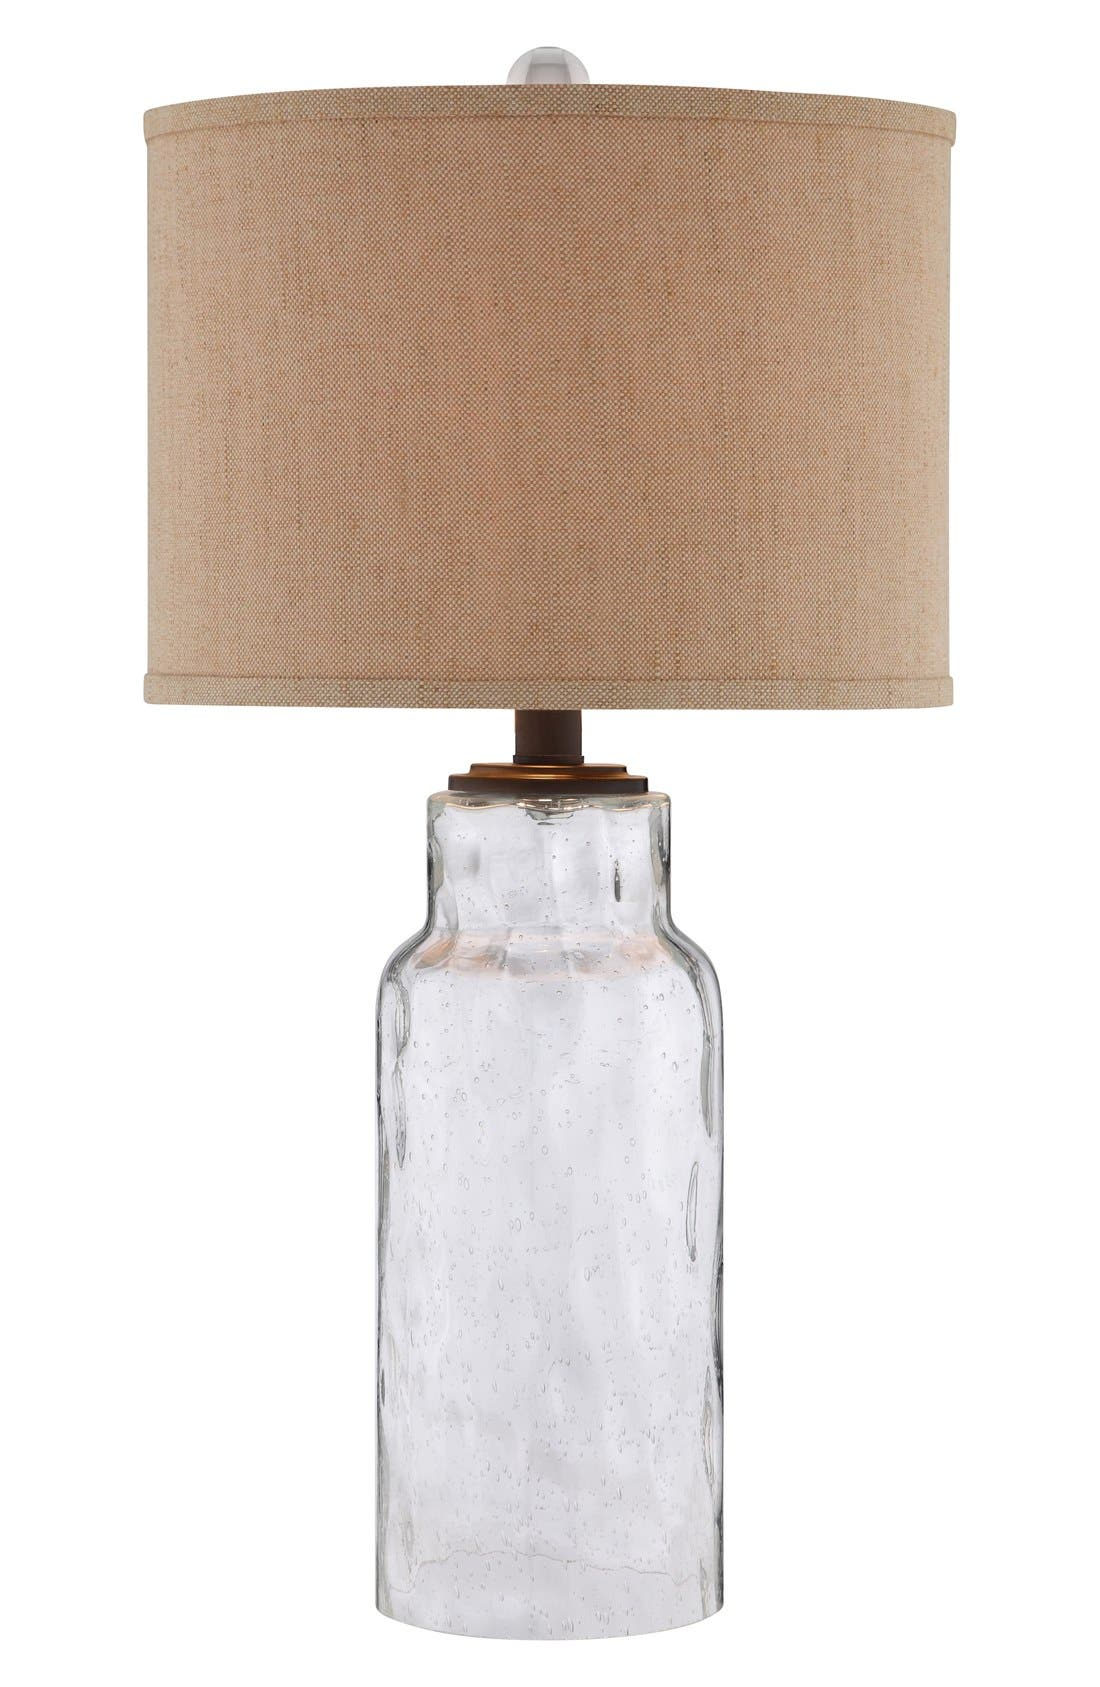 Clear Dimpled Glass Table Lamp,                             Main thumbnail 1, color,                             Clear Glass/ Dark Bronze